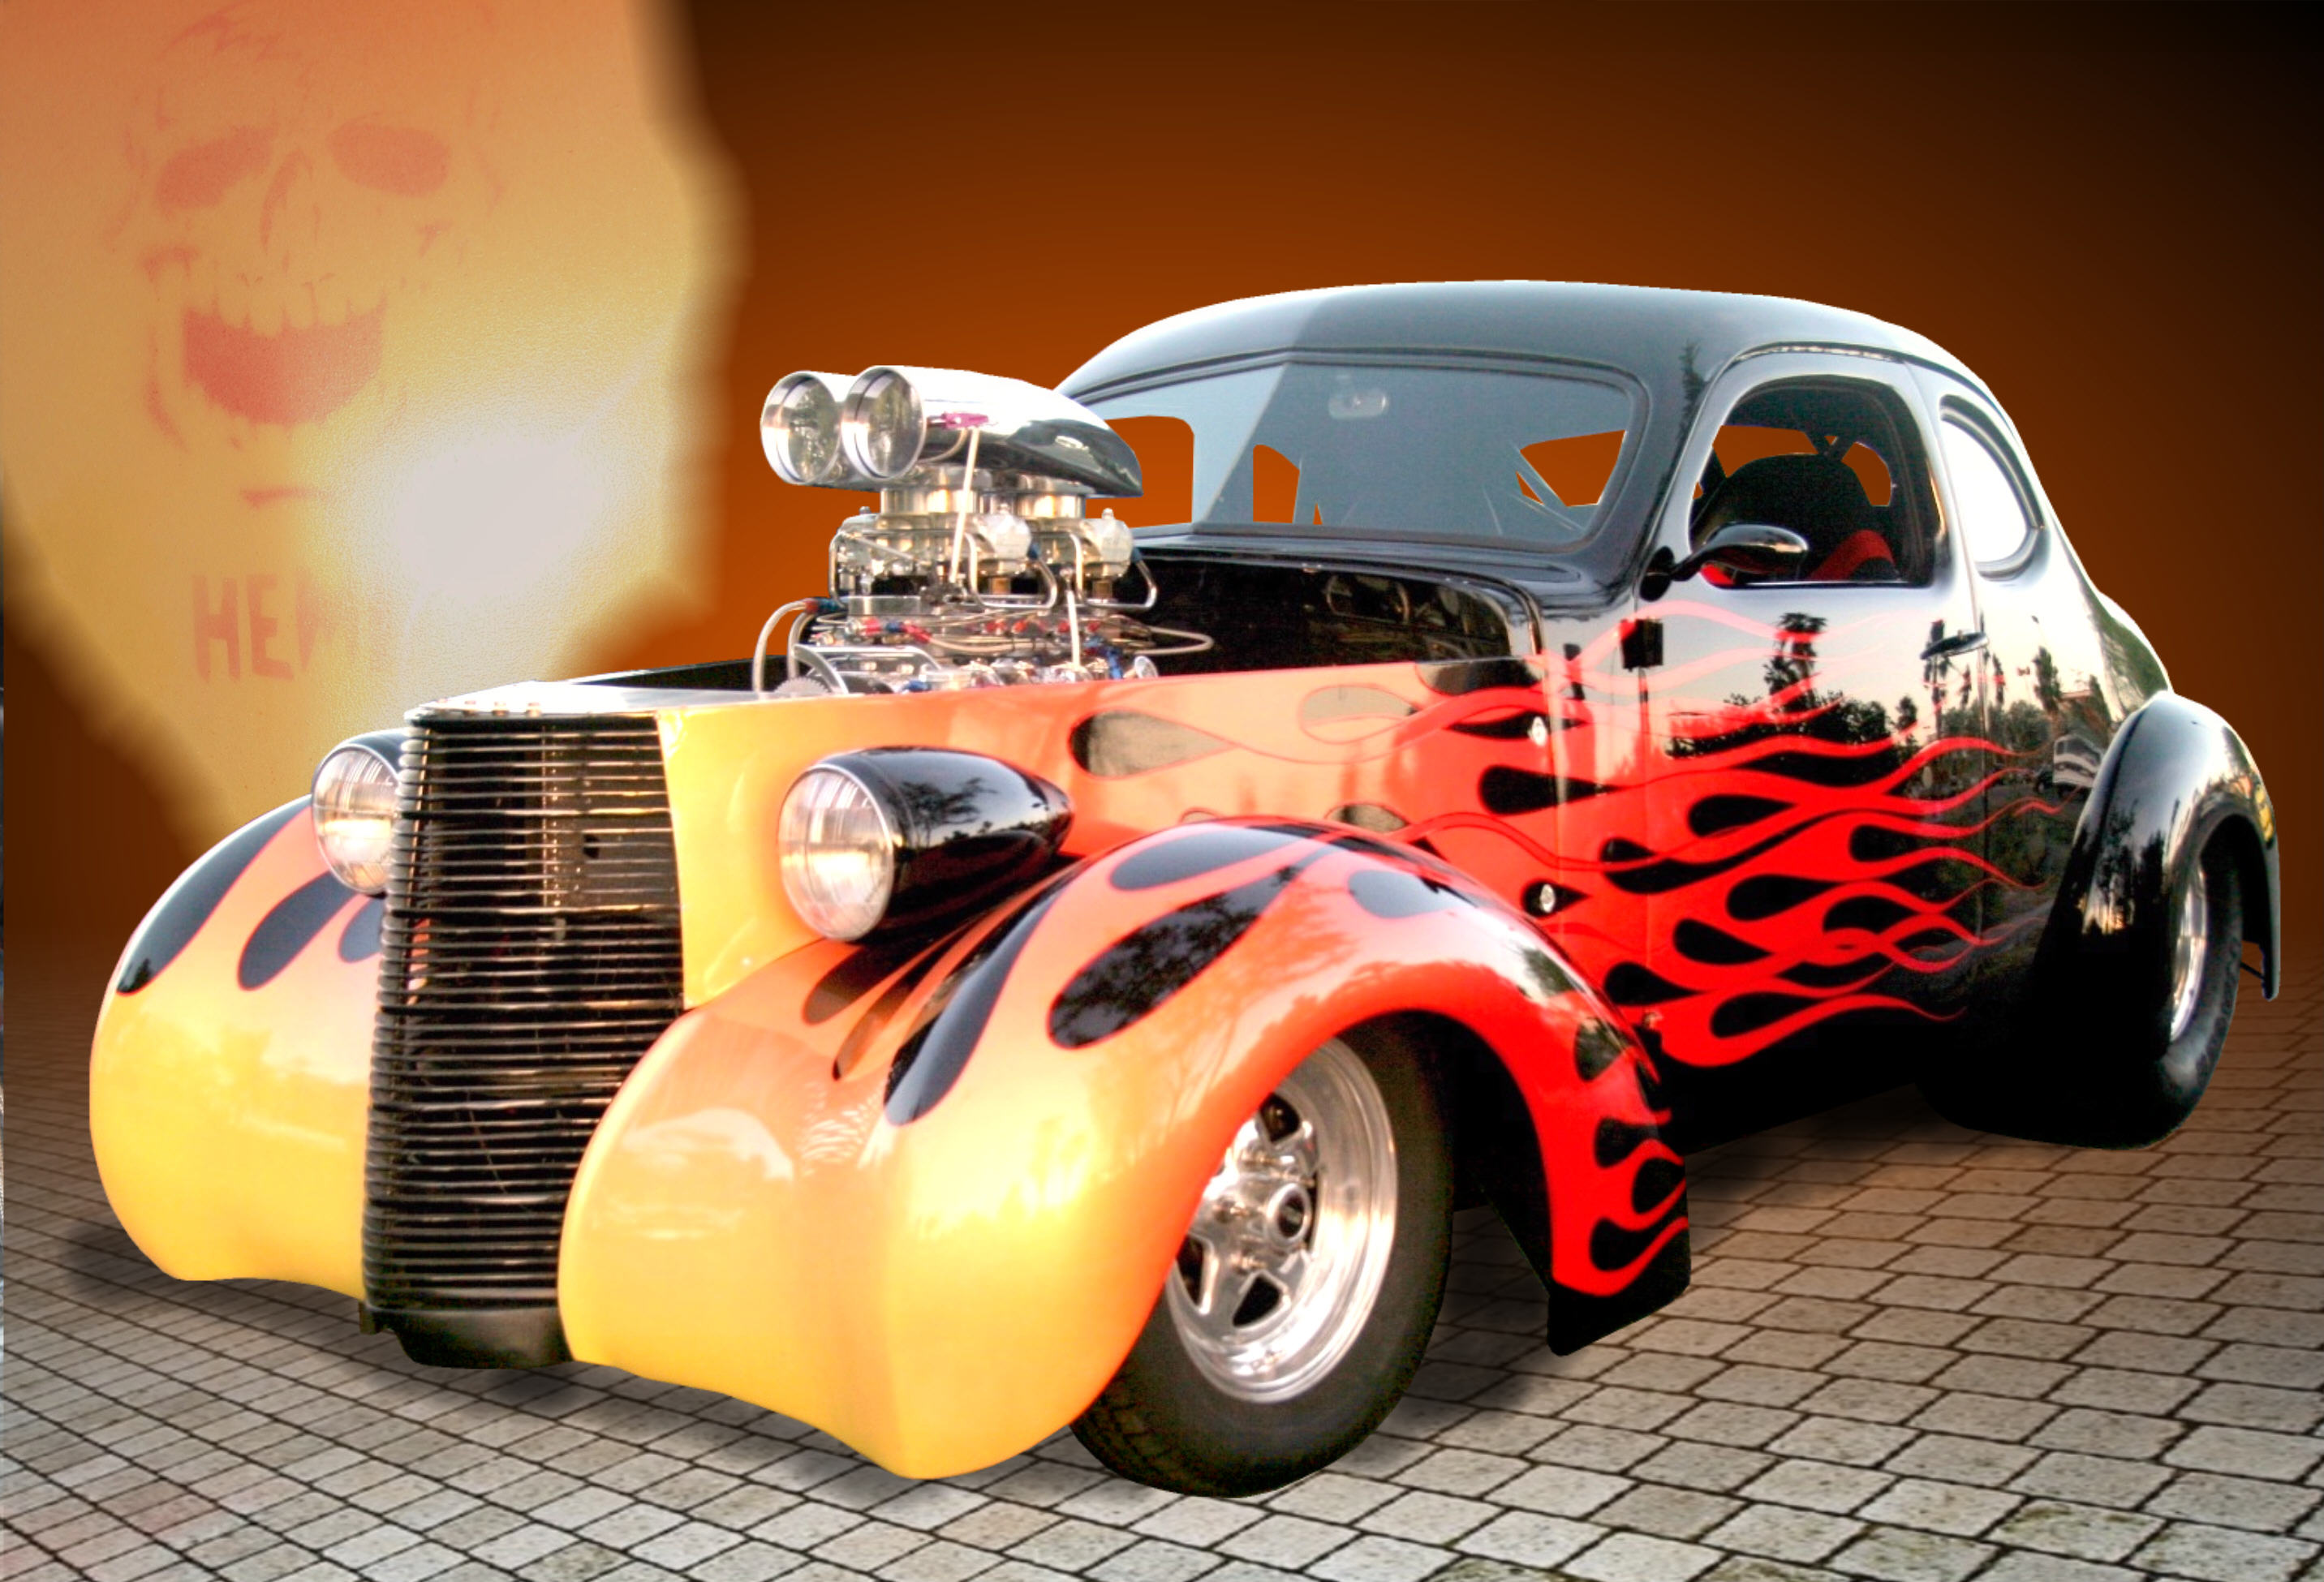 Hot Rod Full HD Wallpaper And Background Image